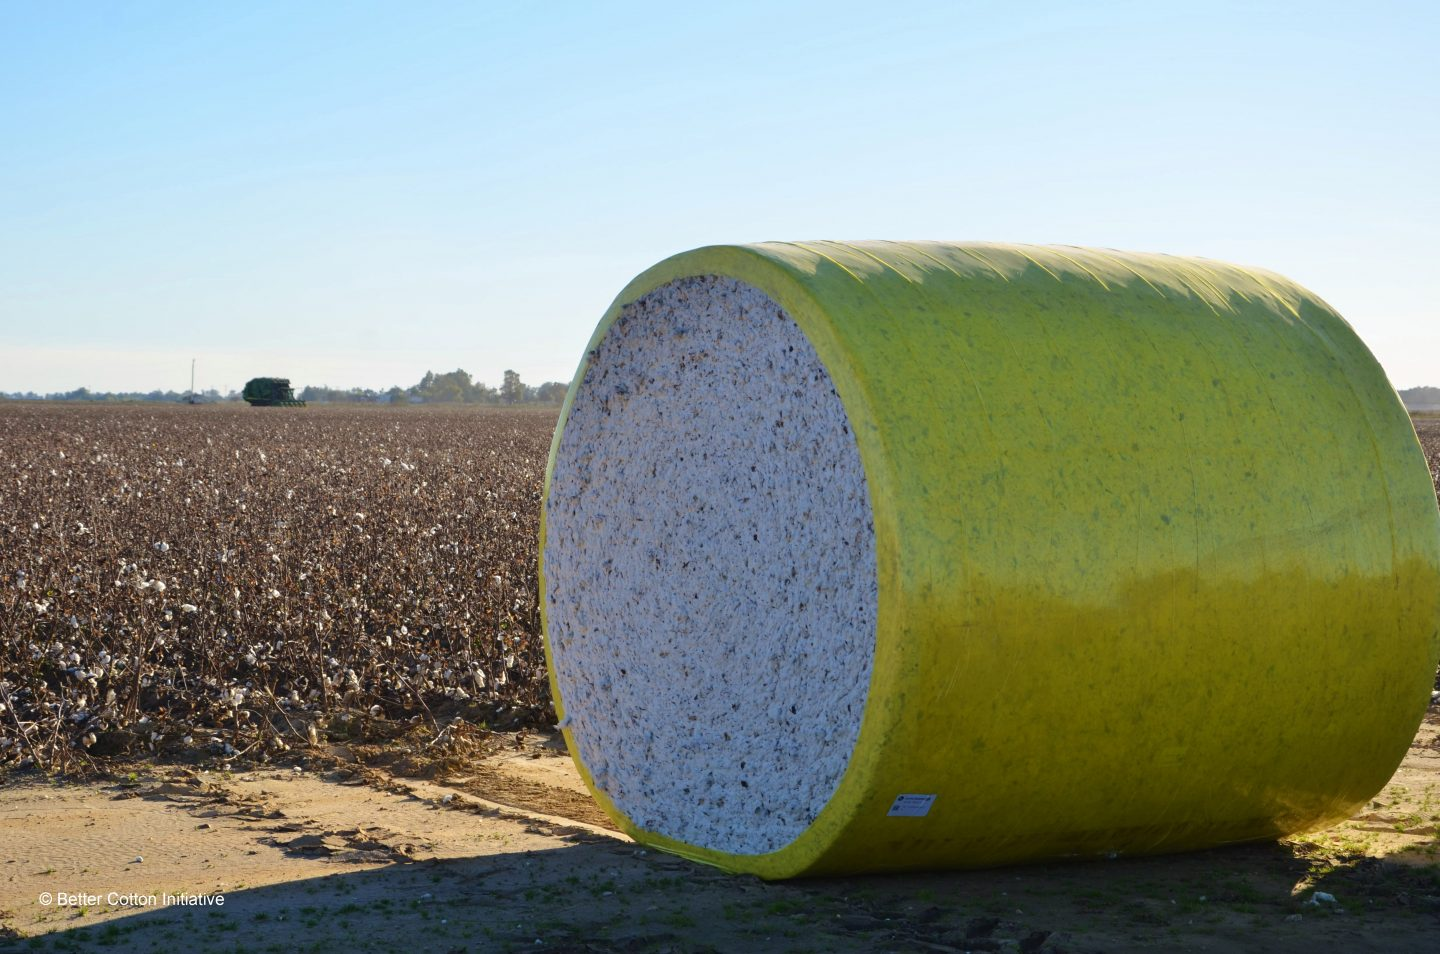 Cotton bale USA on the field wrapped in yellow foil